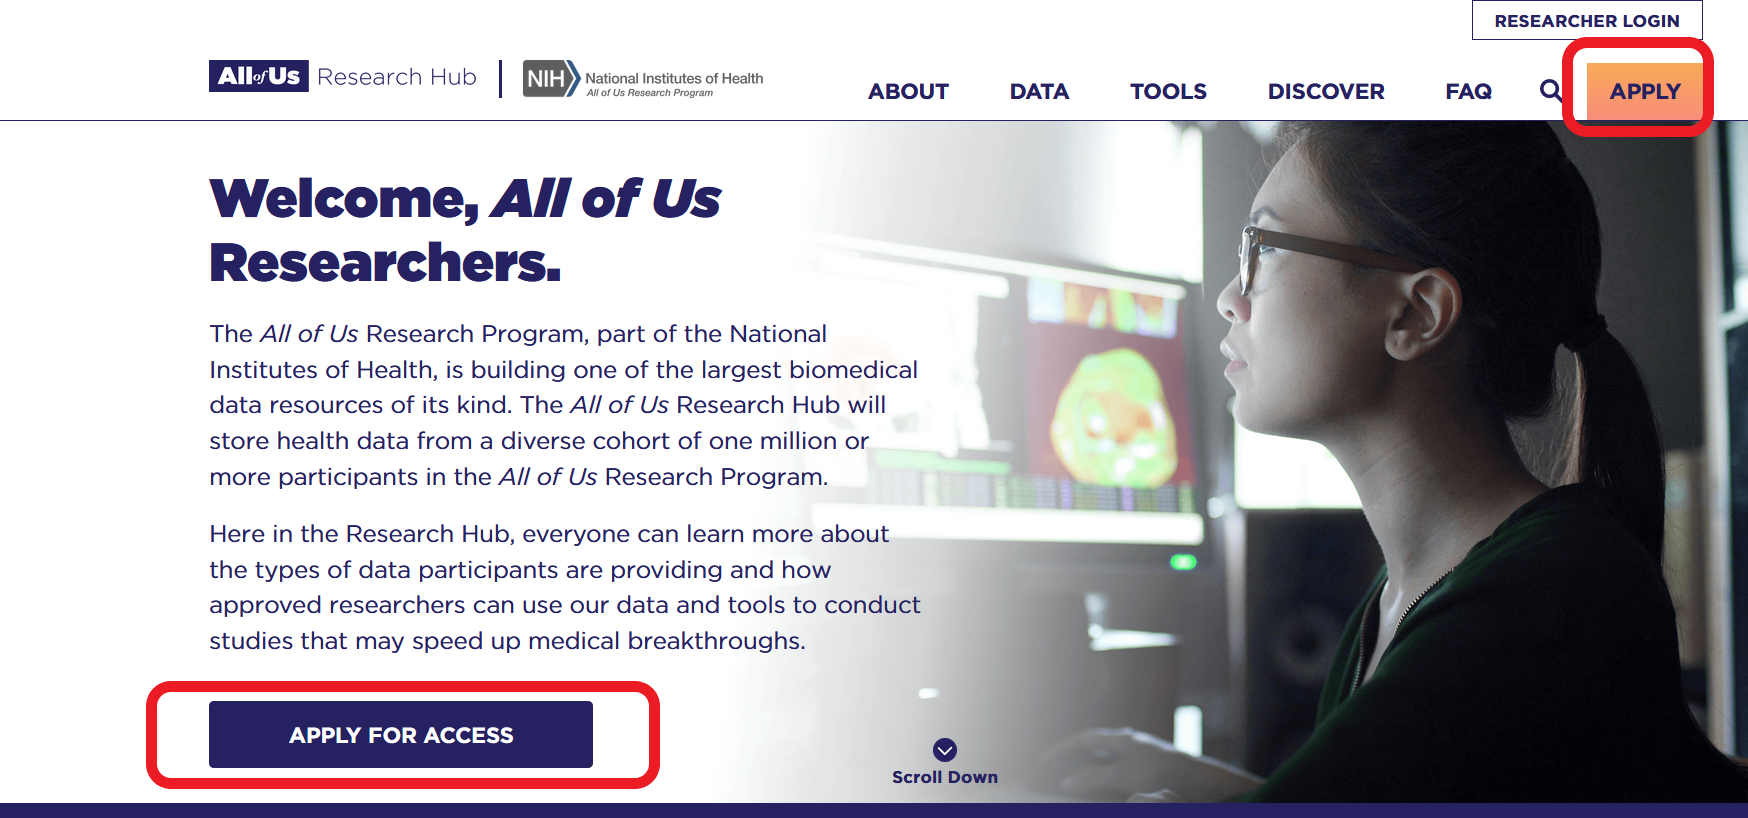 Homepage of the All of Us Research Hub with apply for access button circled.